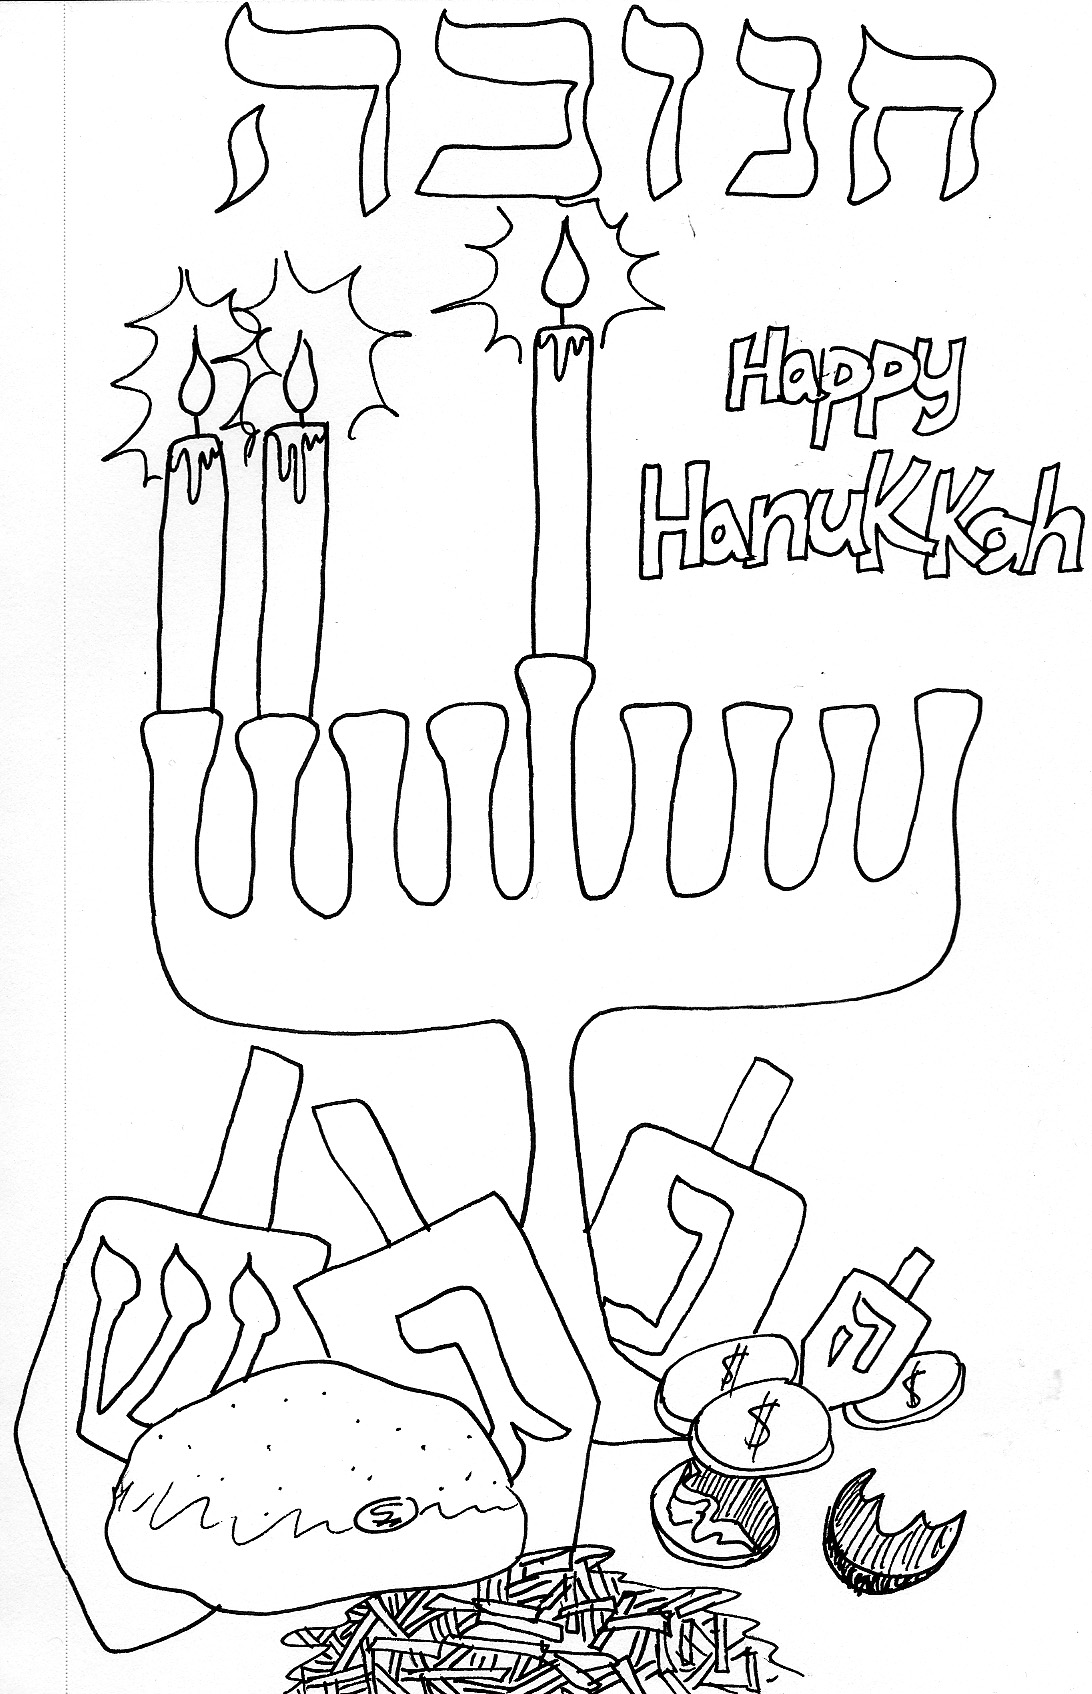 hanukkah coloring pages printable - photo#9